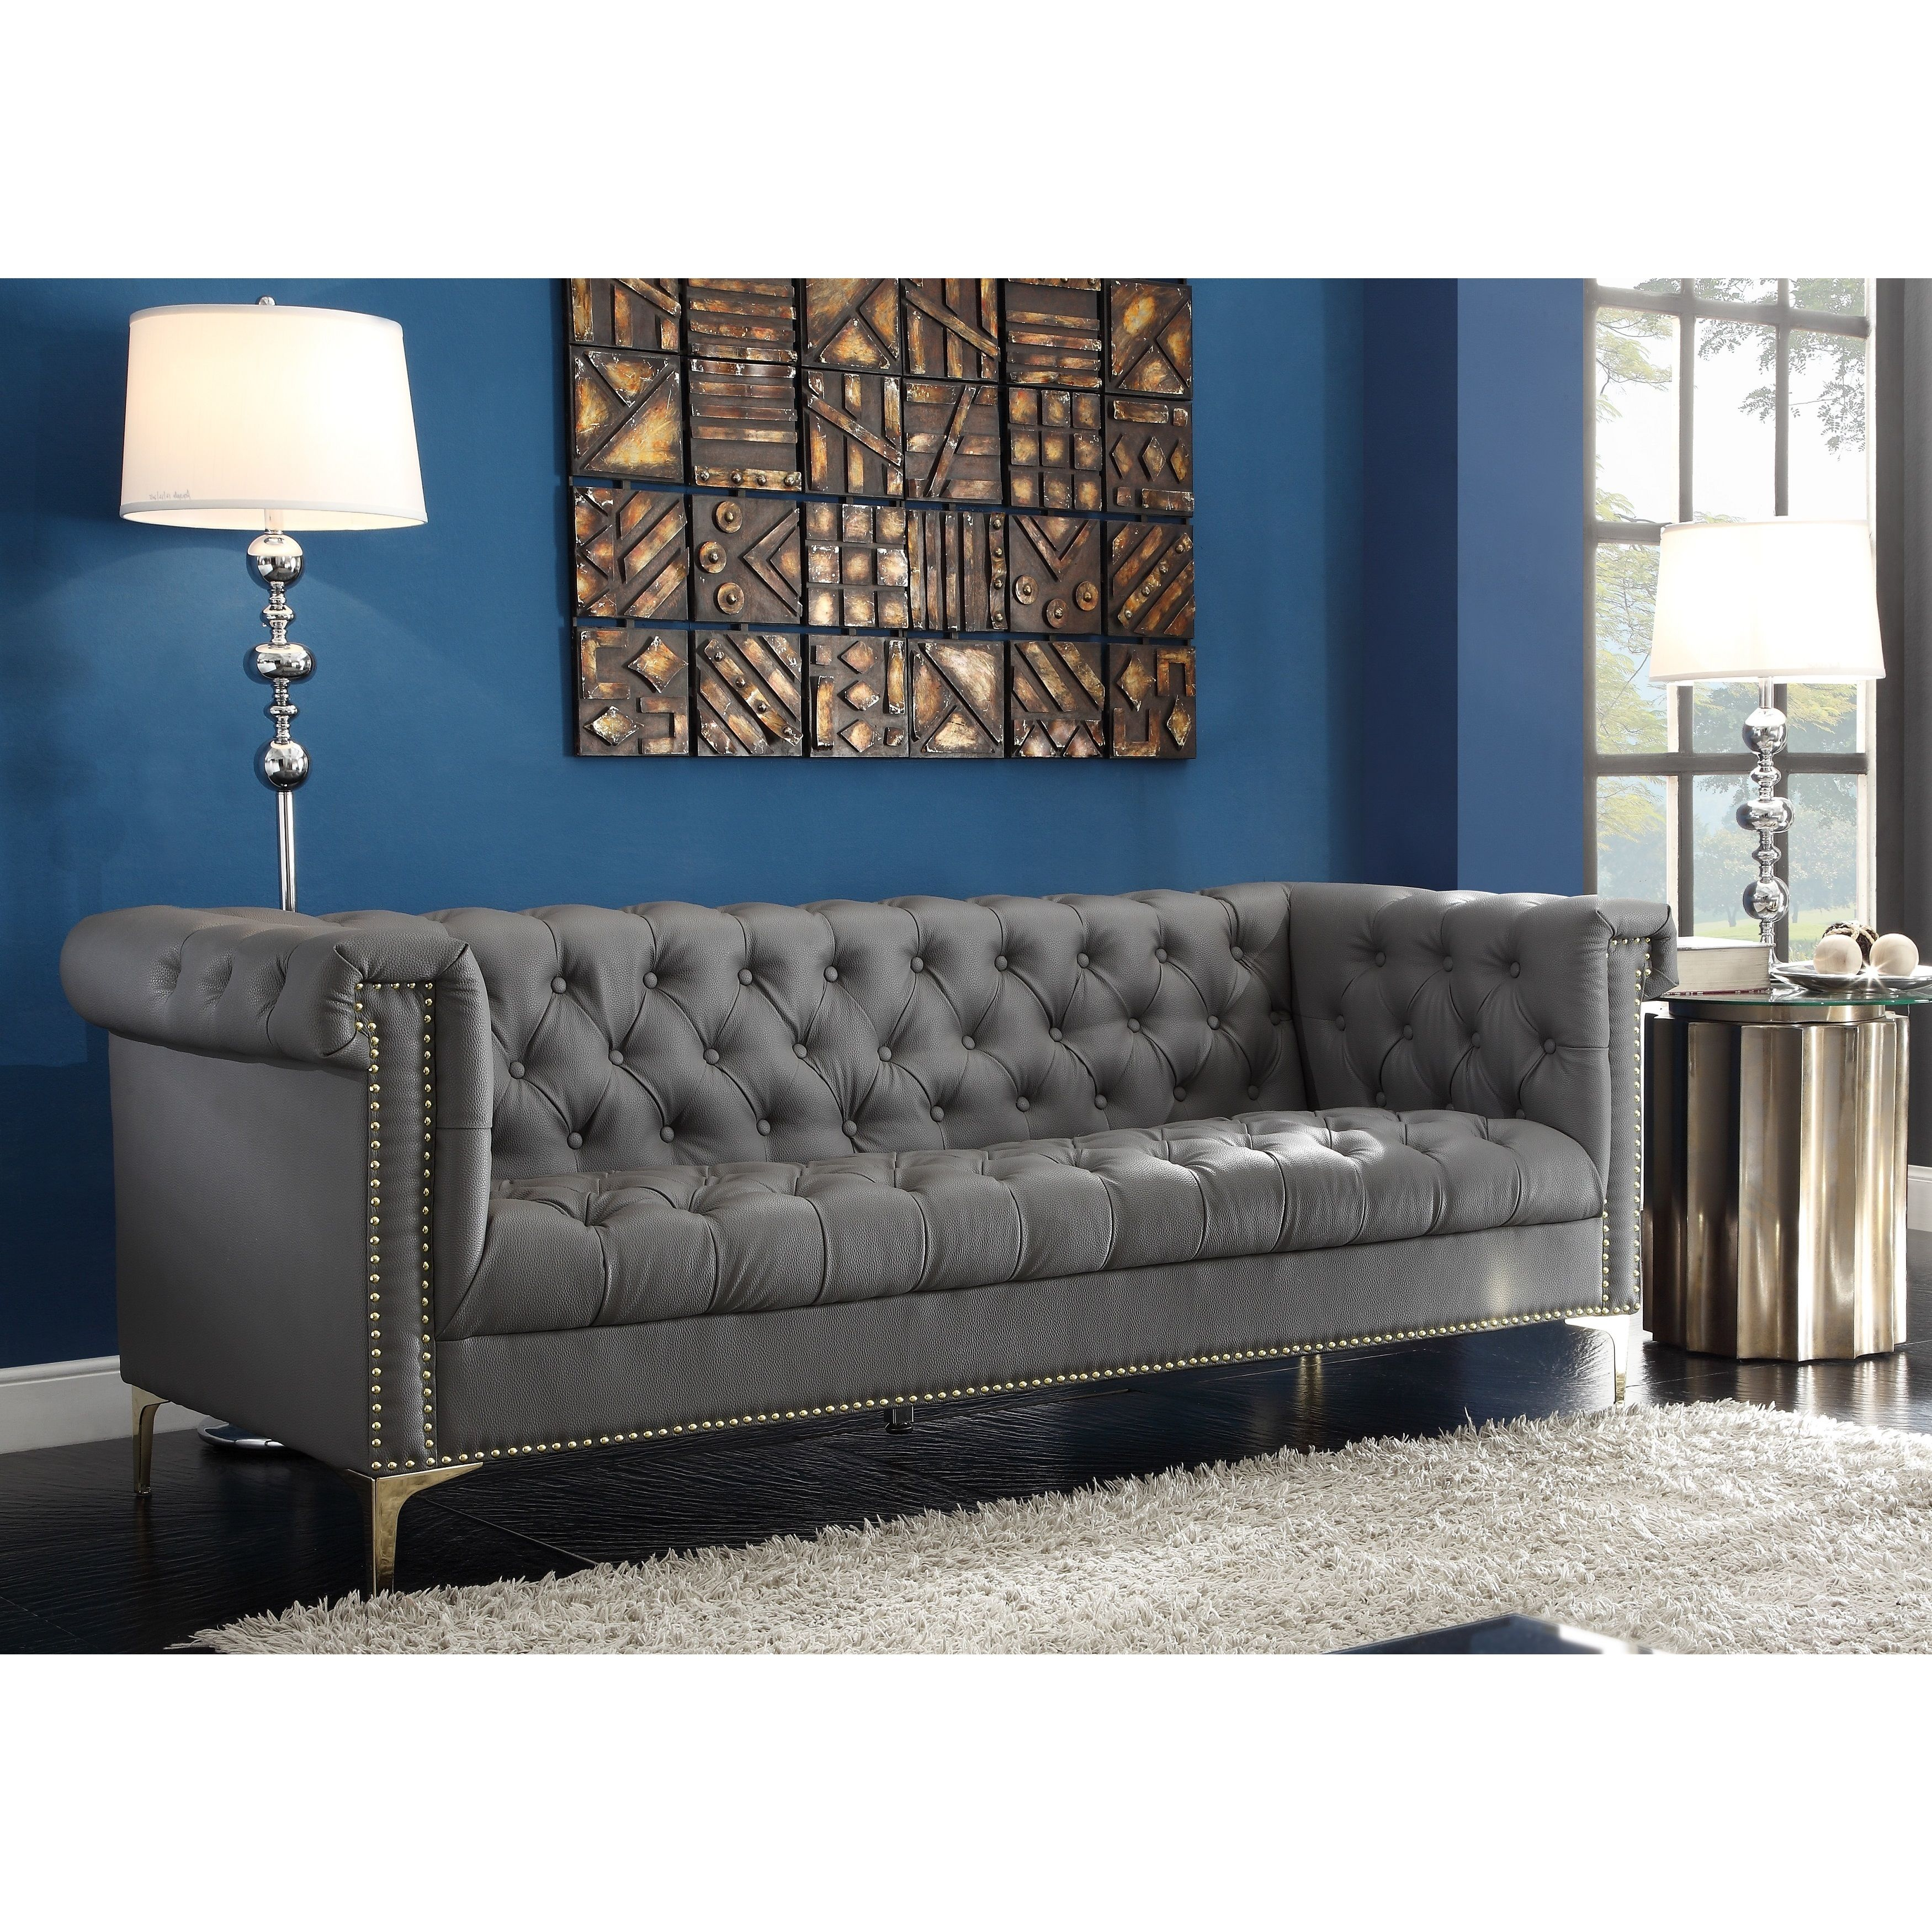 Iconic Home Winston Blue Black Grey Chrome Leather Button Tufted